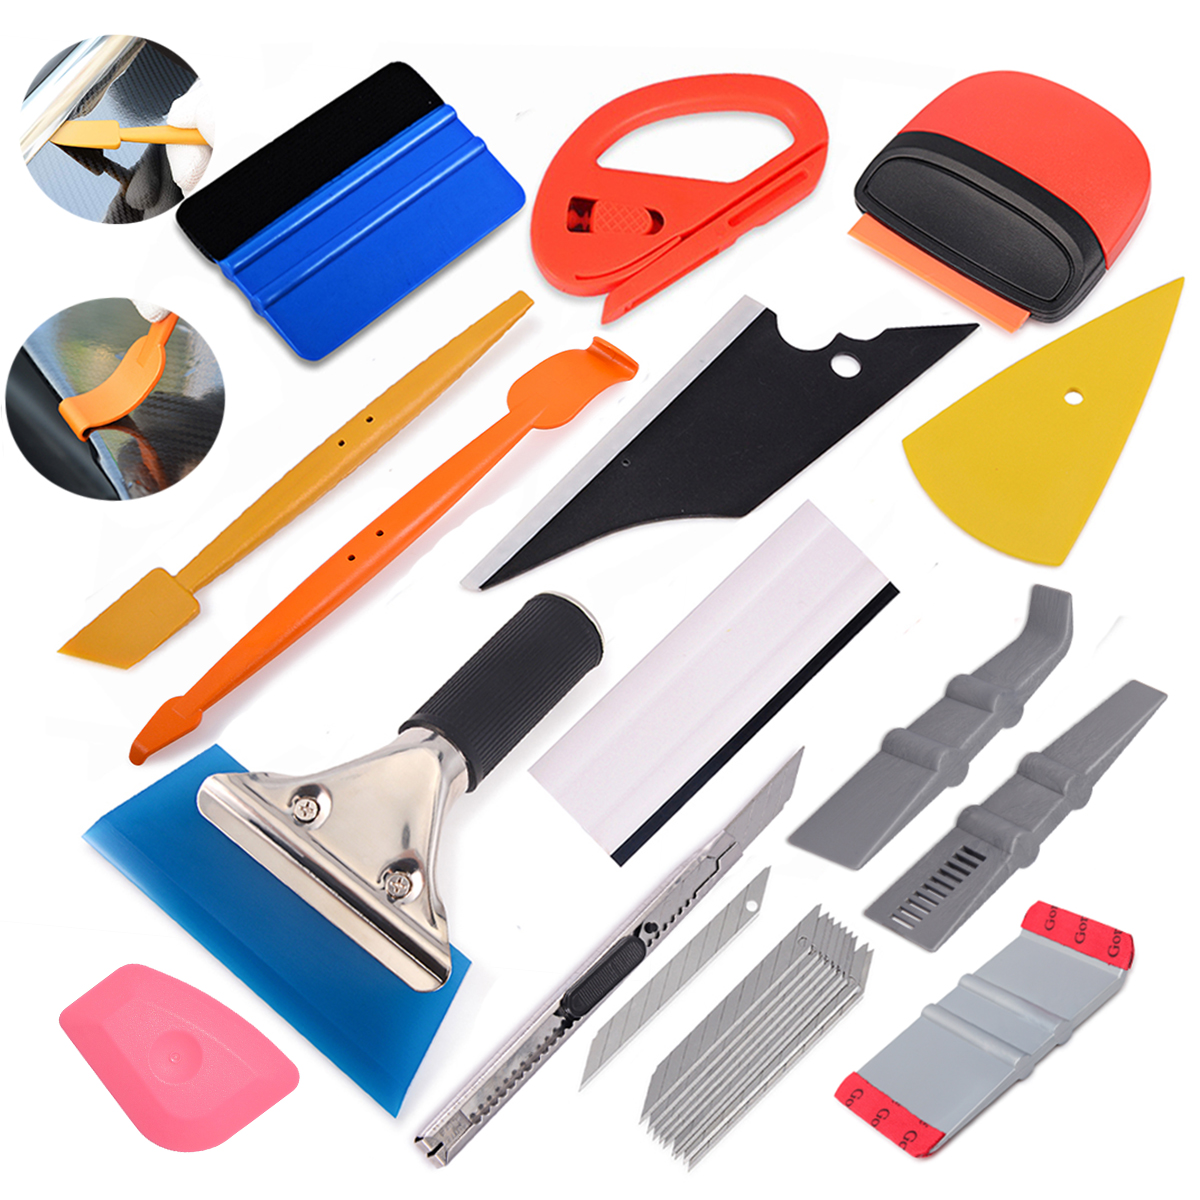 FOSHIO Carbon Fiber Film Vinyl Wrap Car Accessories Tool Kit Magnet Squeegee Clean Scraper Sticker Cutter Window Tinting Tools